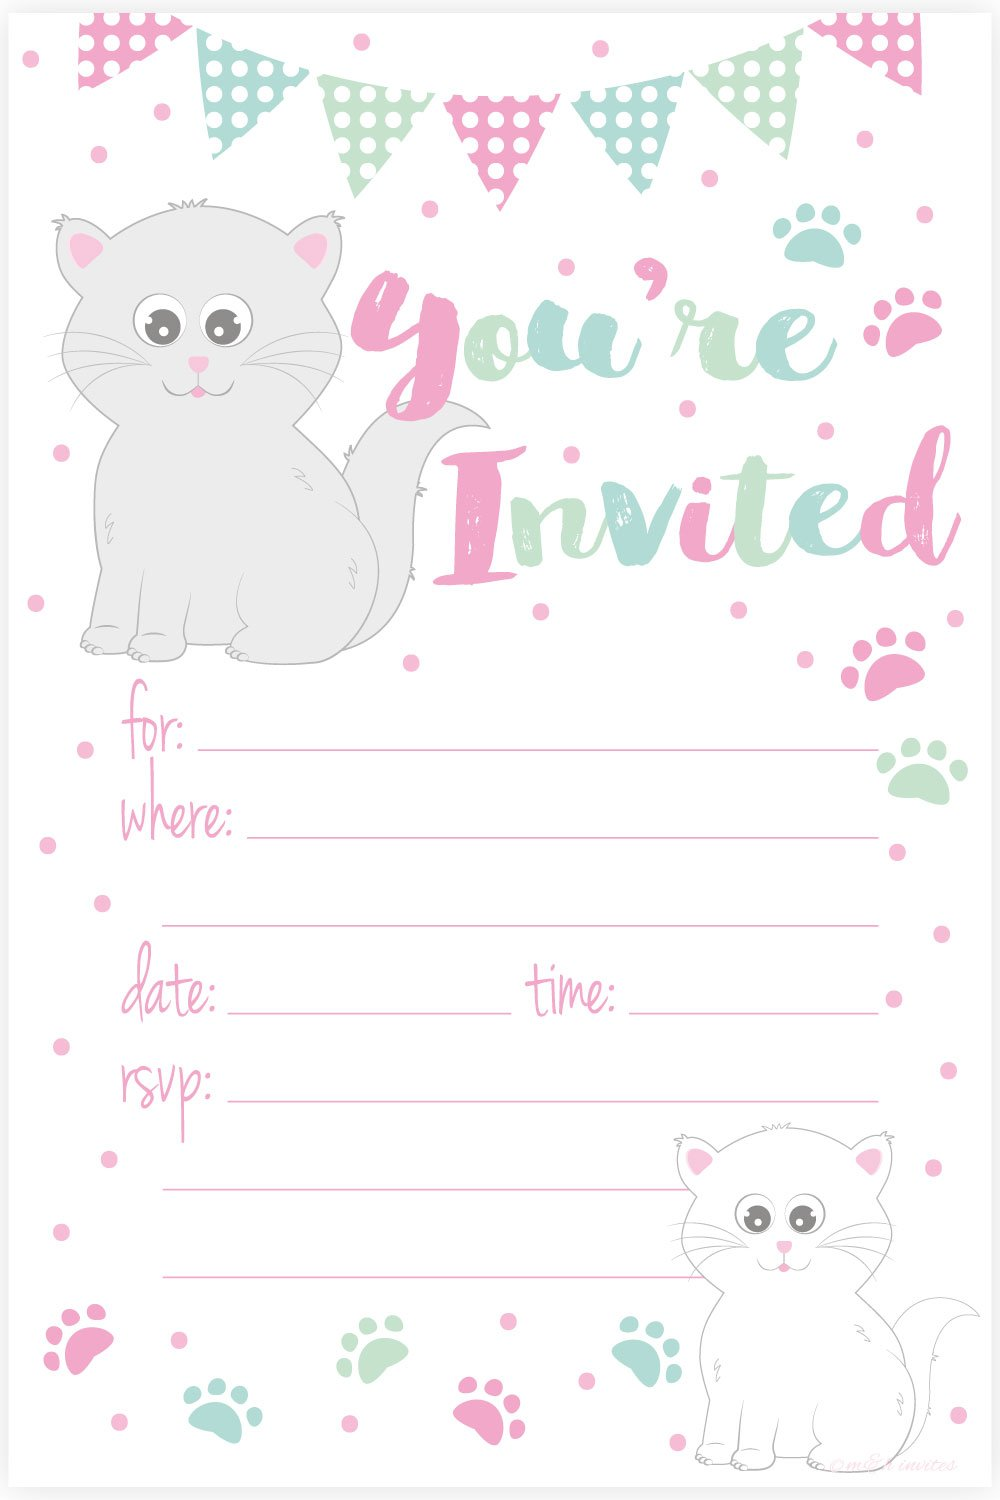 Kitty Cat Birthday Party Invitations - Fill In Style (20 Count) With Envelopes by m&h invites